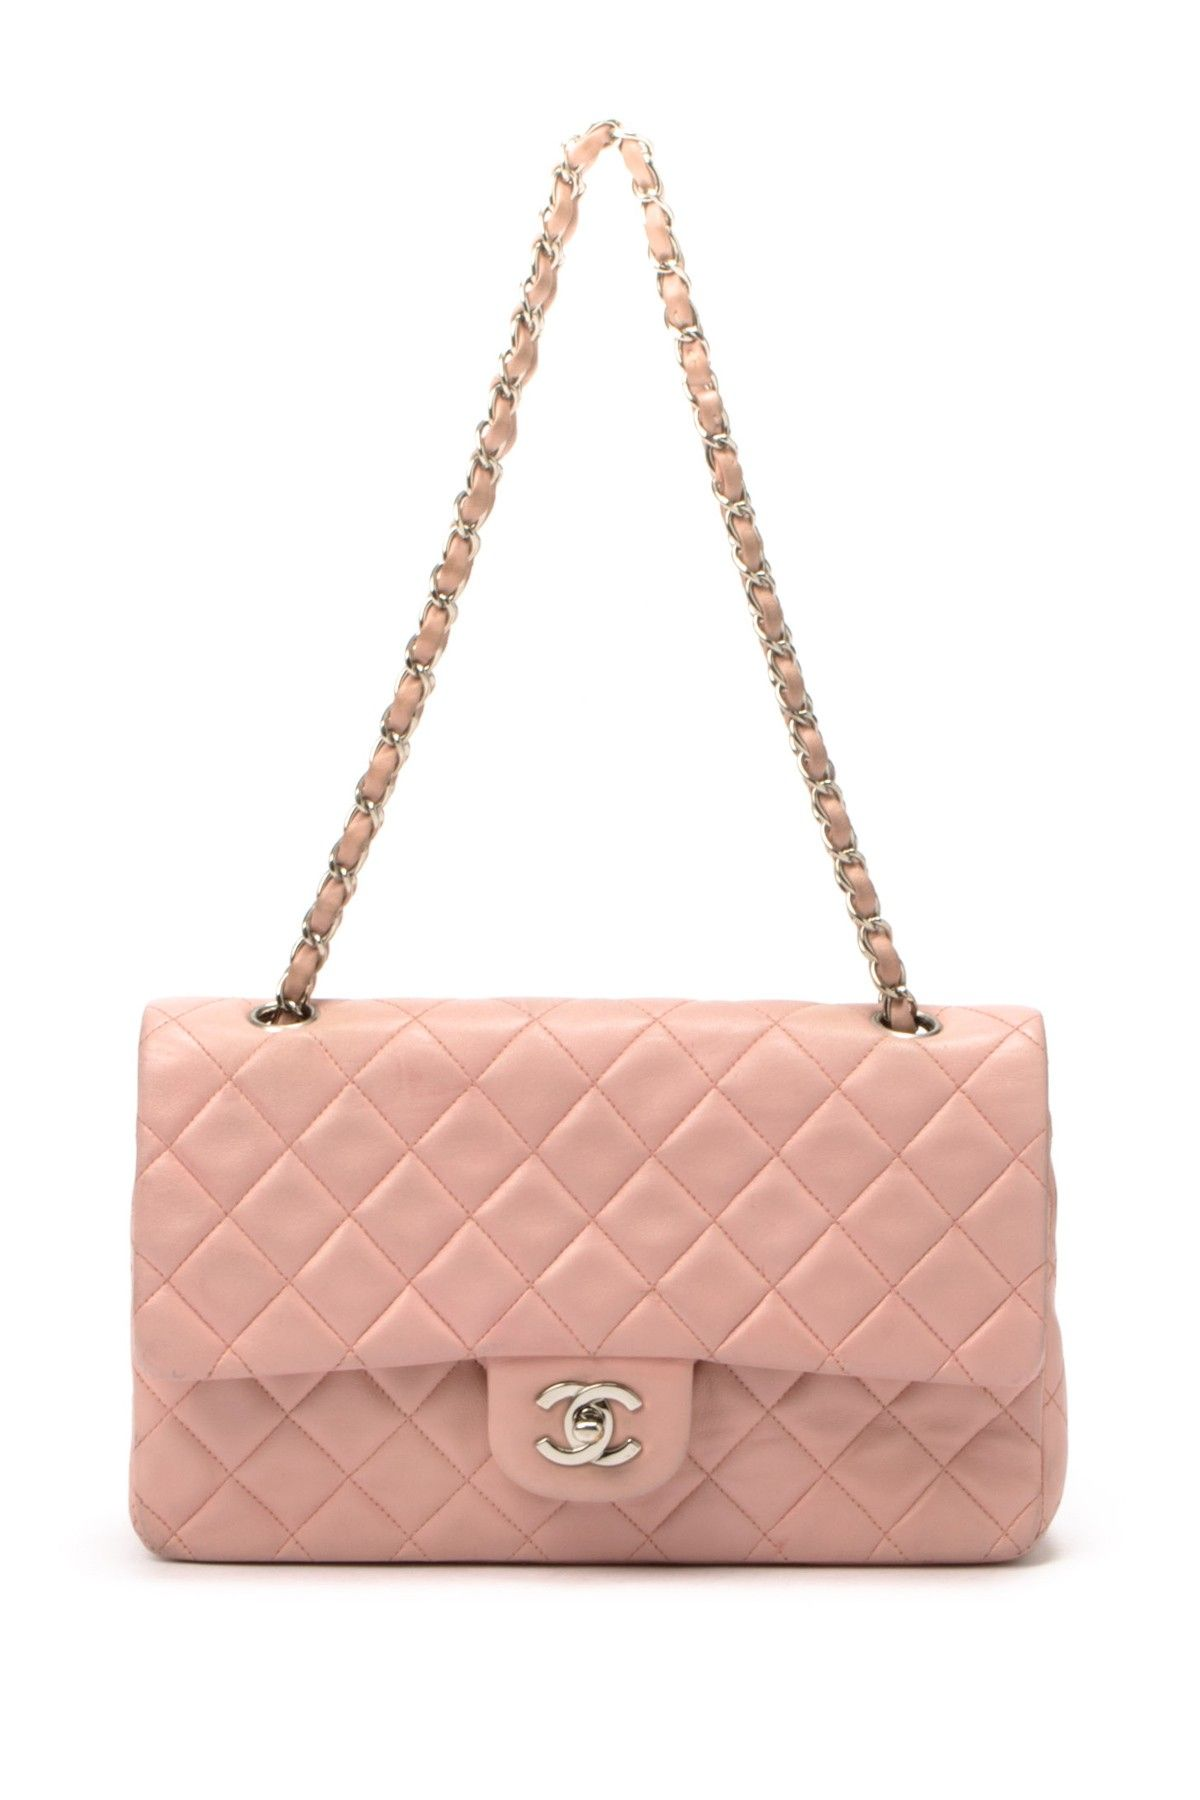 Classy Chanel clutches for ladies forecasting dress in on every day in 2019